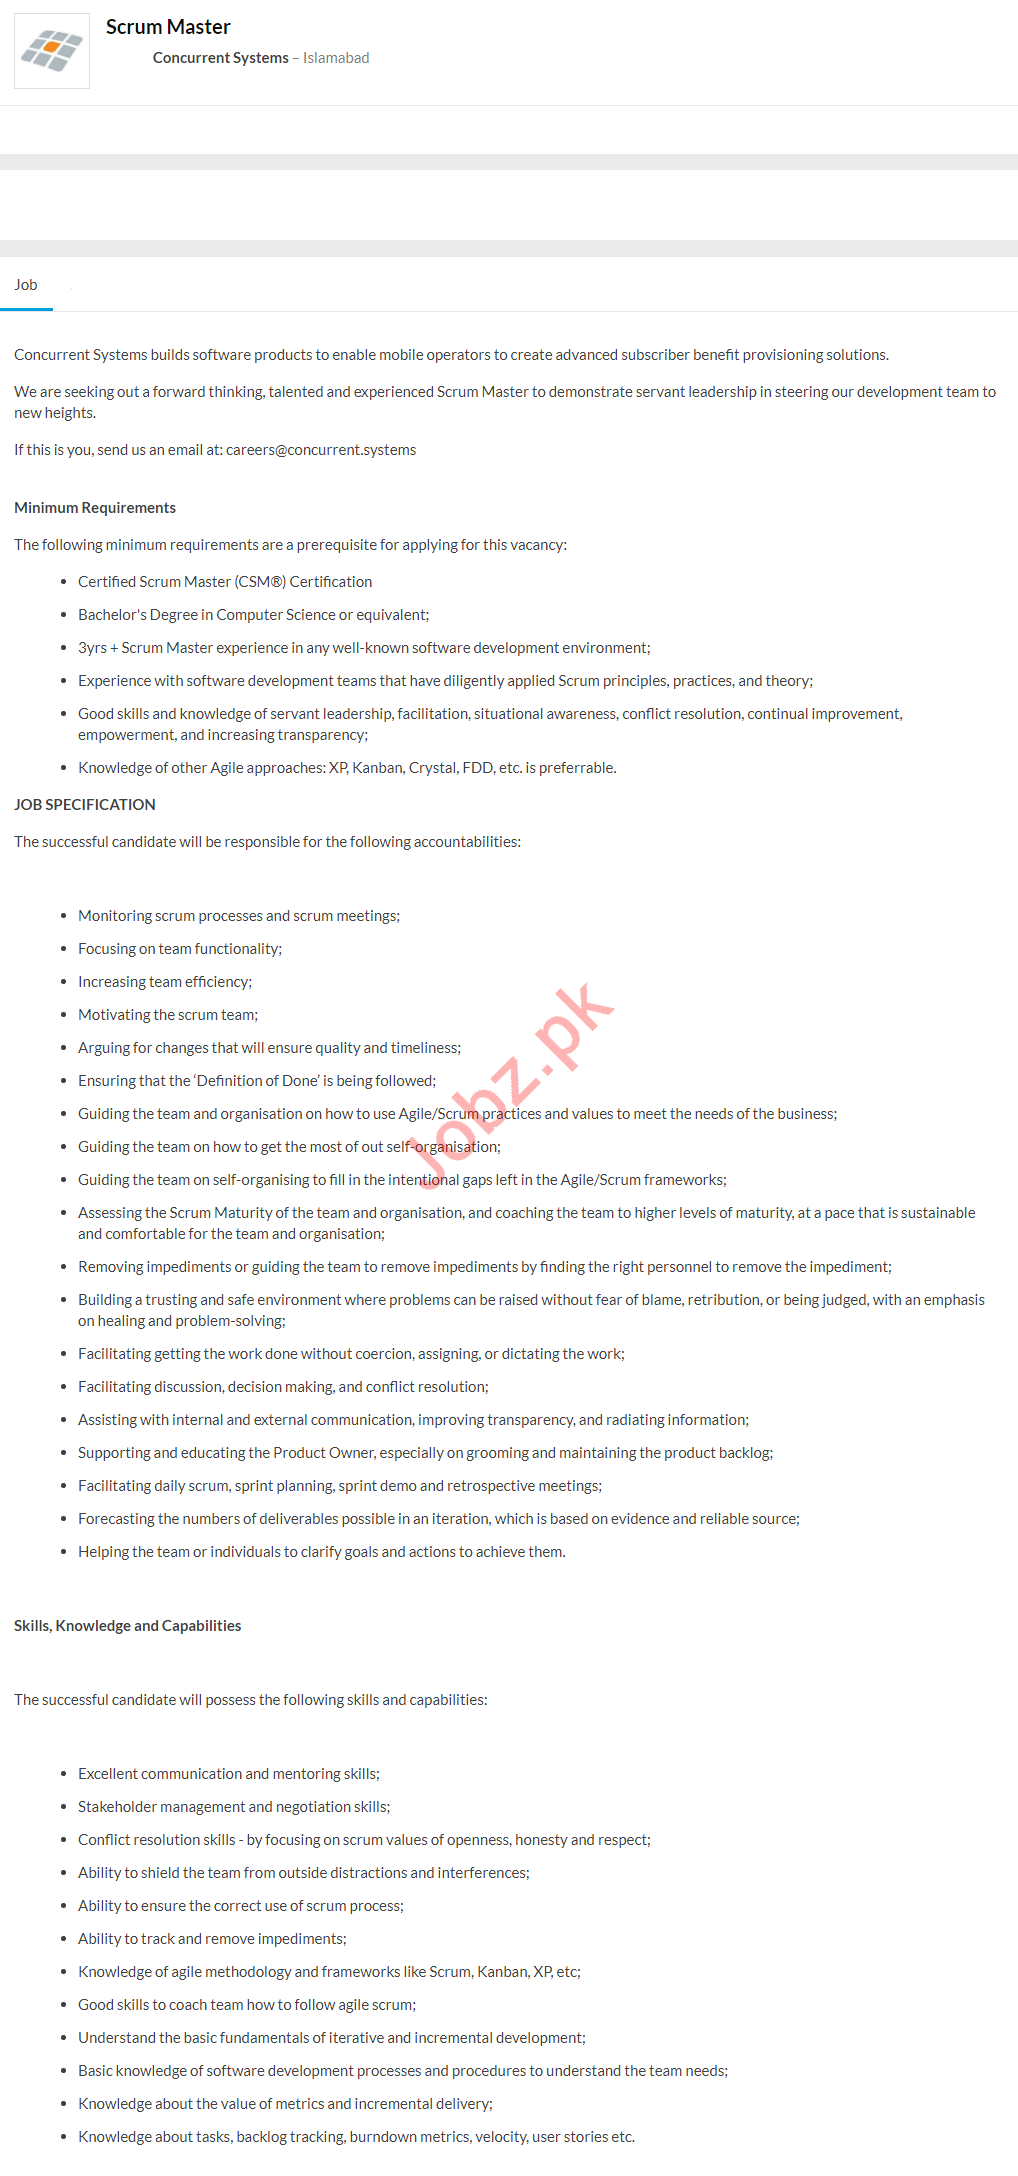 Concurrent Systems Islamabad Jobs 2020 Scrum Master